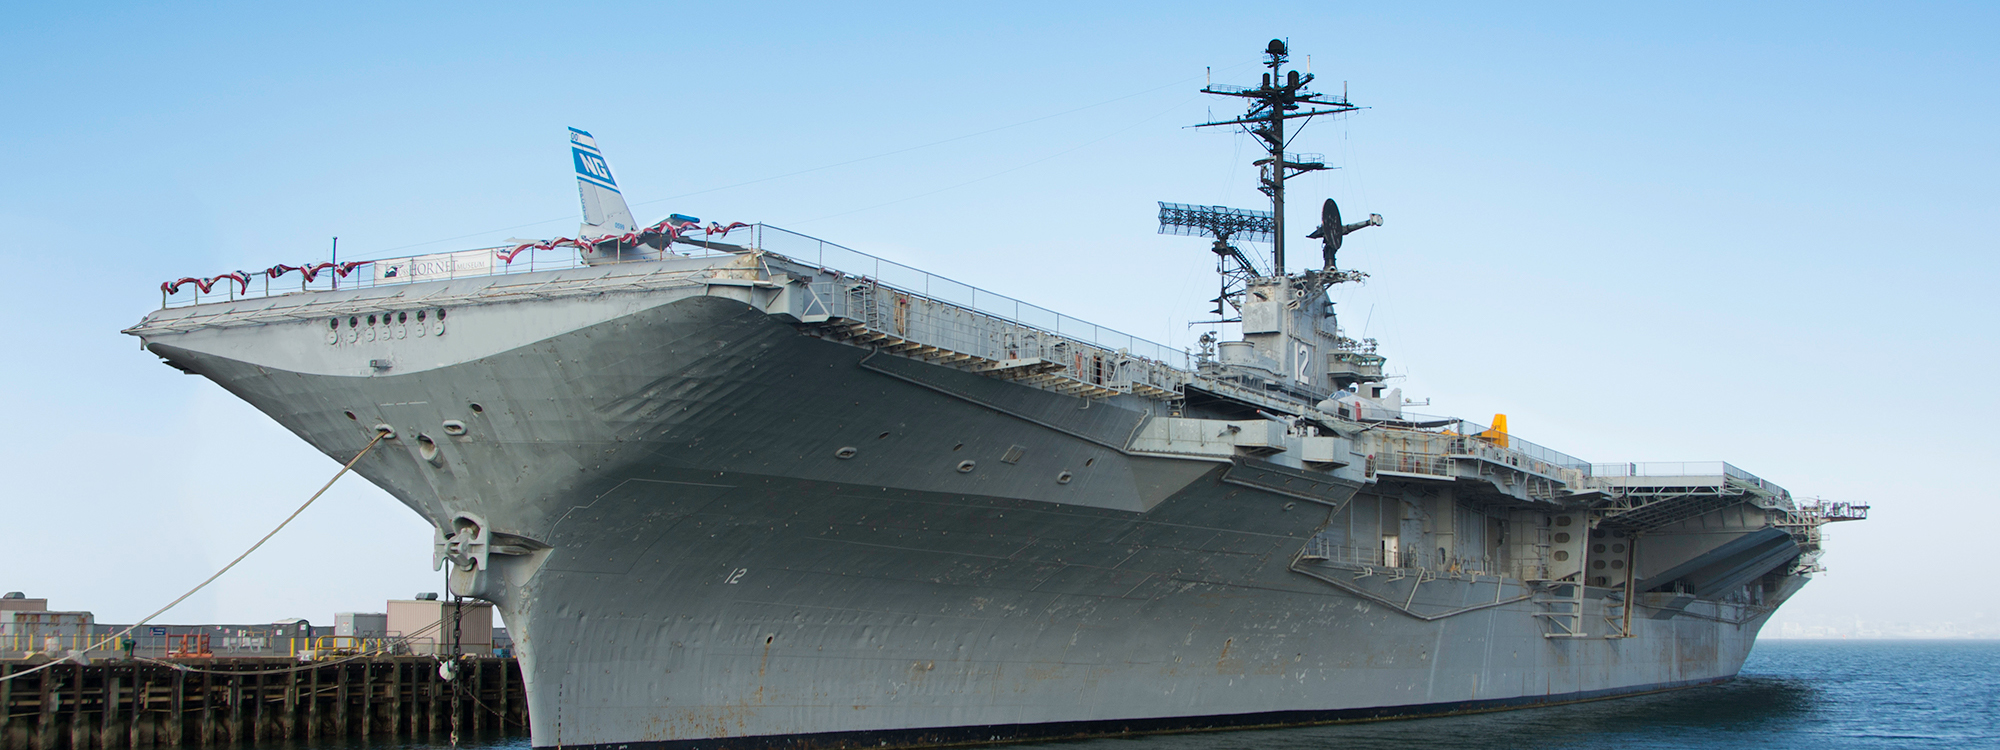 USS Hornet Museum – Discover and learn history onboard a